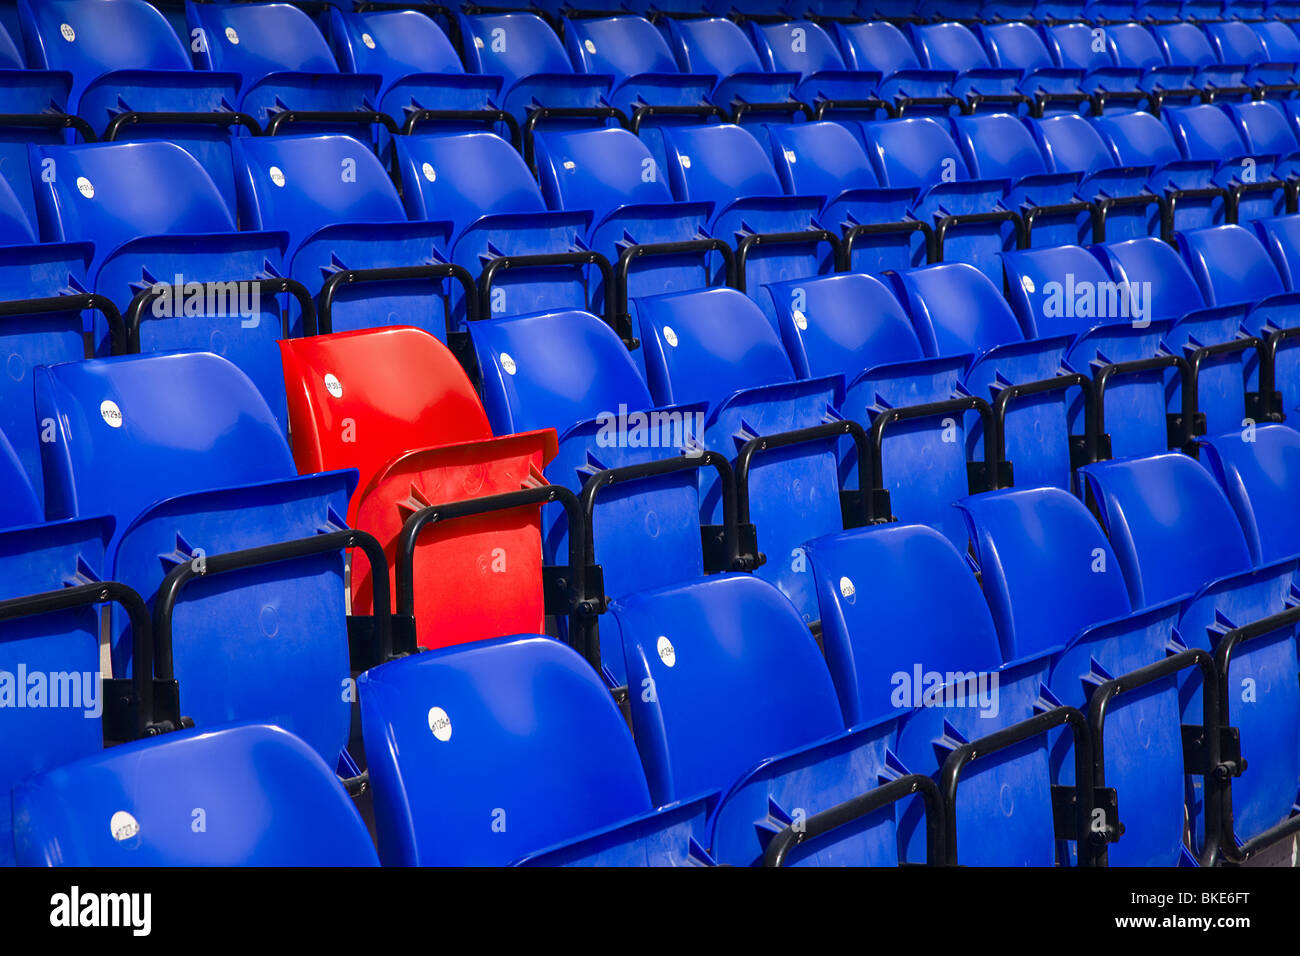 empty stadium with blue seating with one red seat - Stock Image